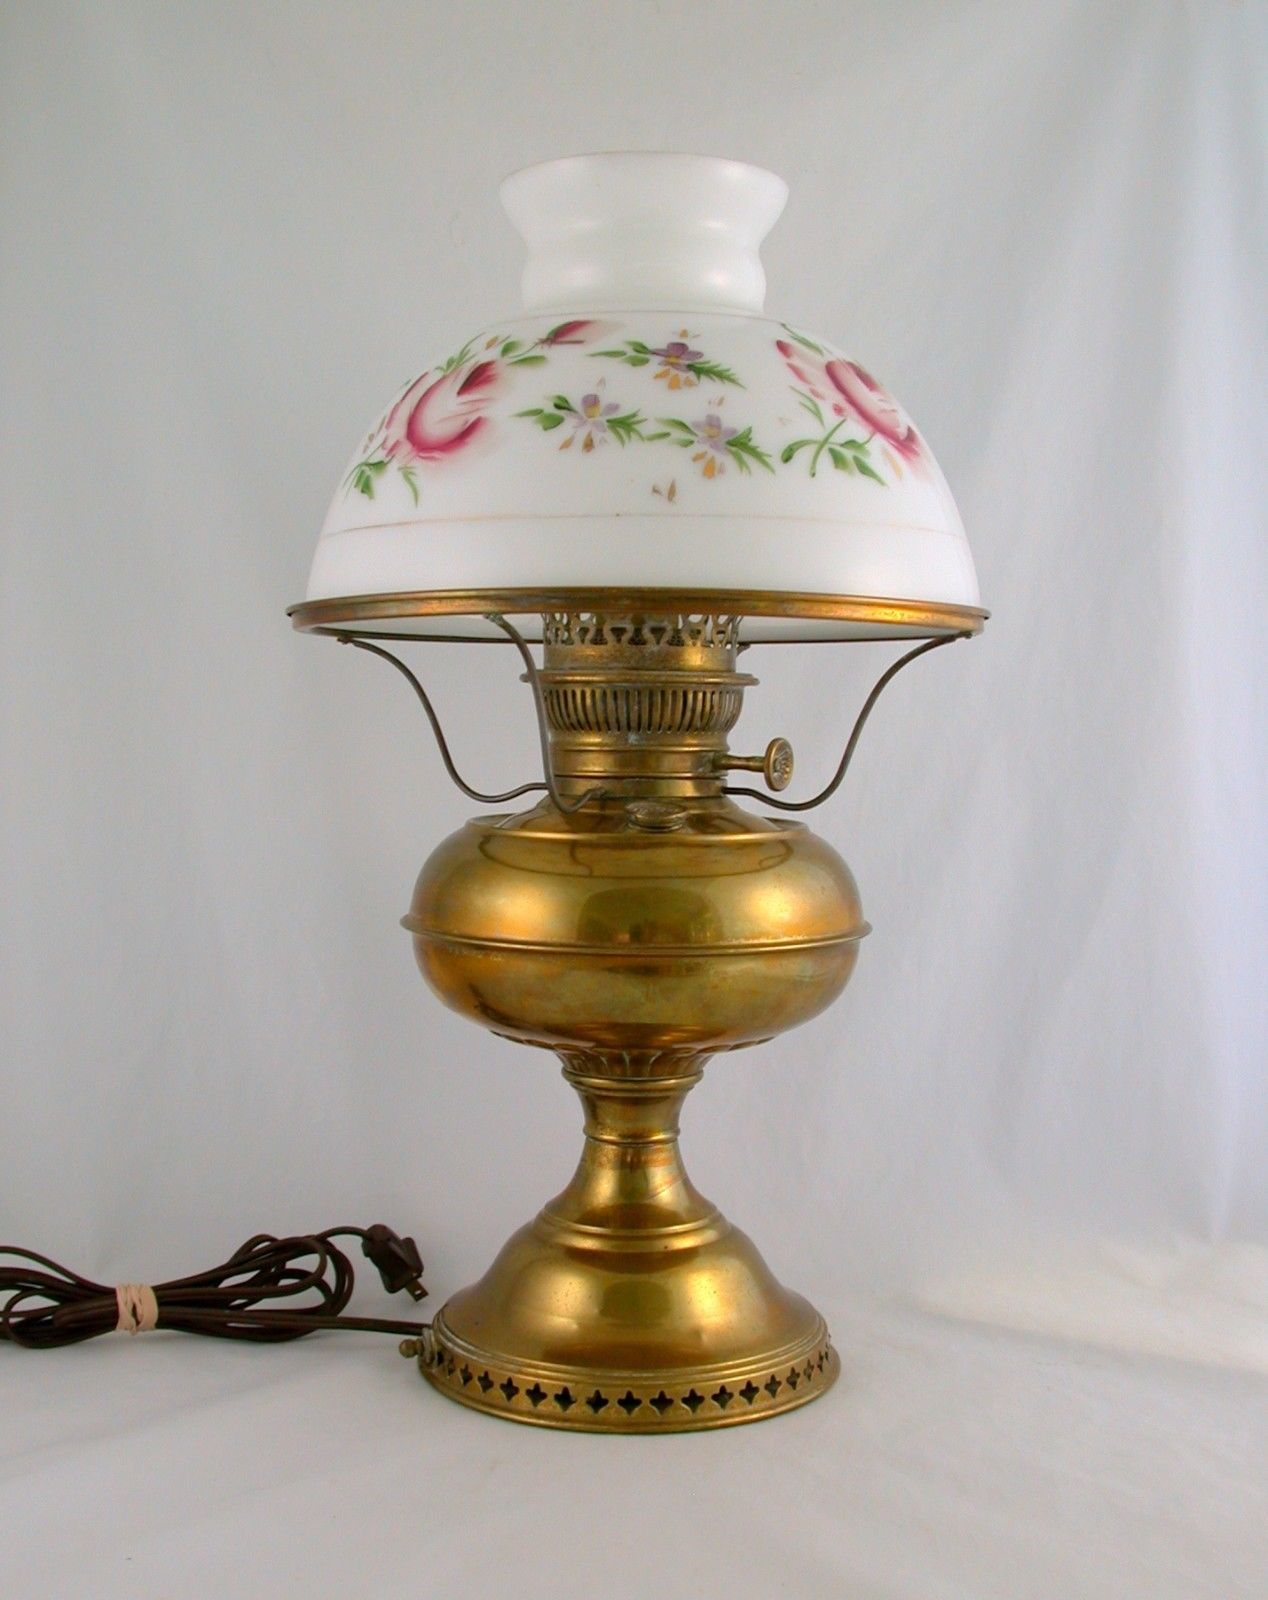 Details About Antique Victorian Brass Oil Lamp W Period